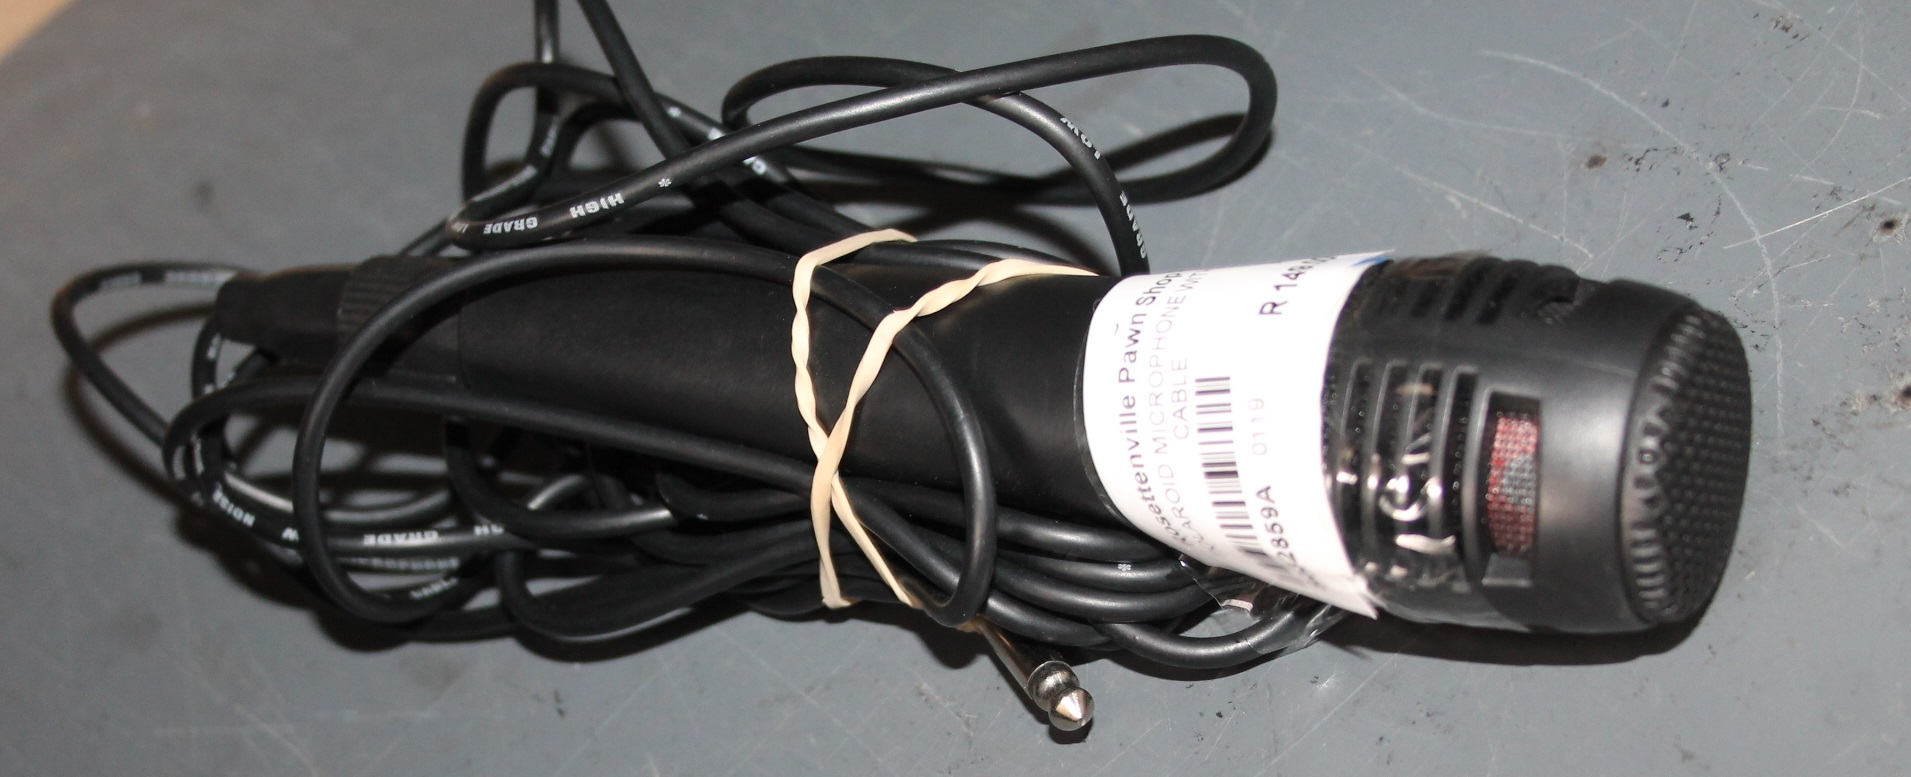 Polariod microphone with cable S032859A #Rosettenvillepawnshop